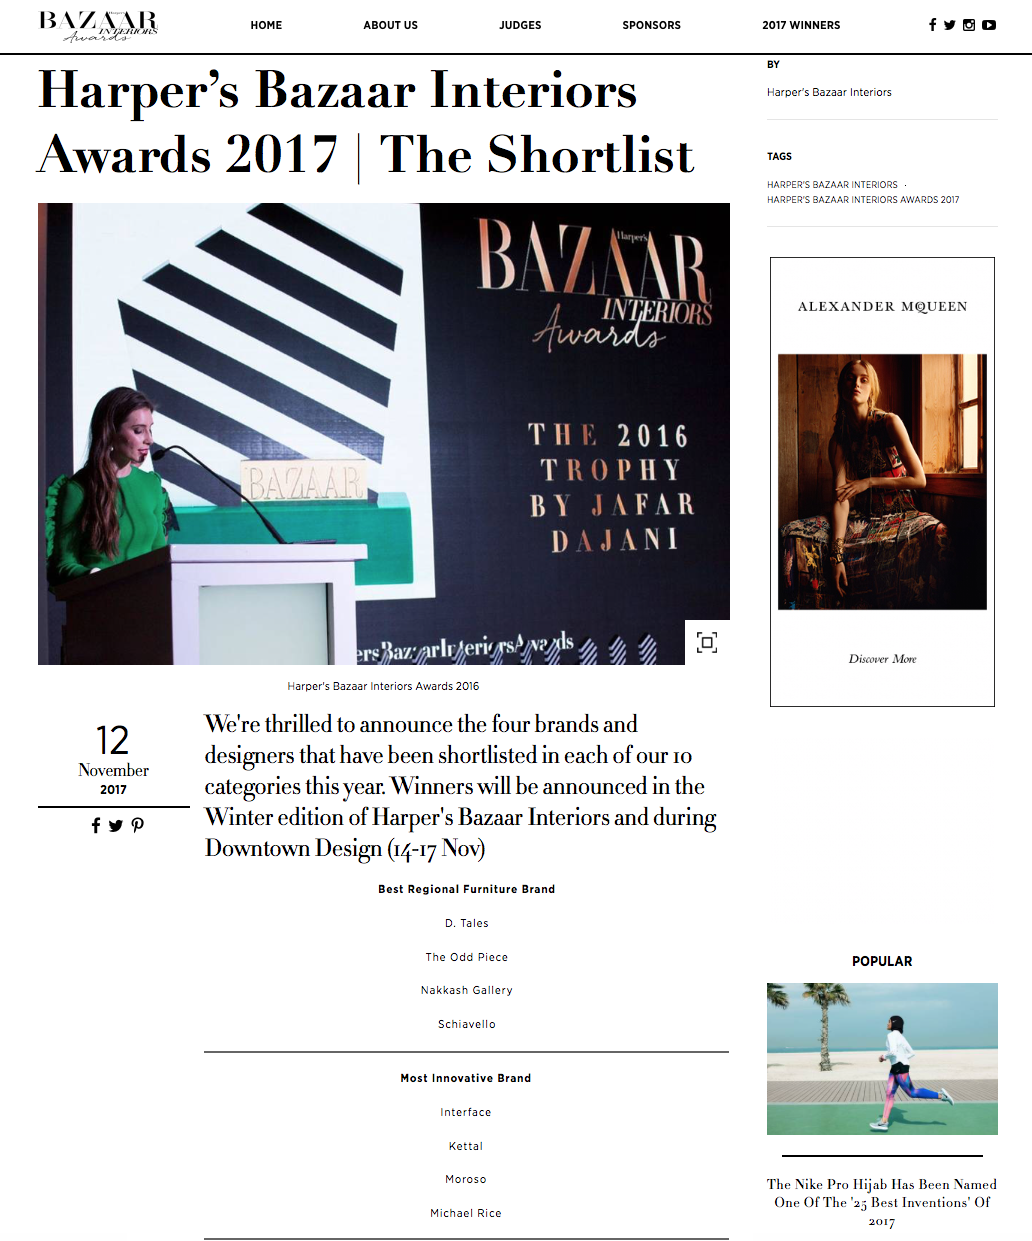 Thrilled to have been shortlisted by @harpersbazzarinteriors as one of the Most Innovative Brand Nominees 2017